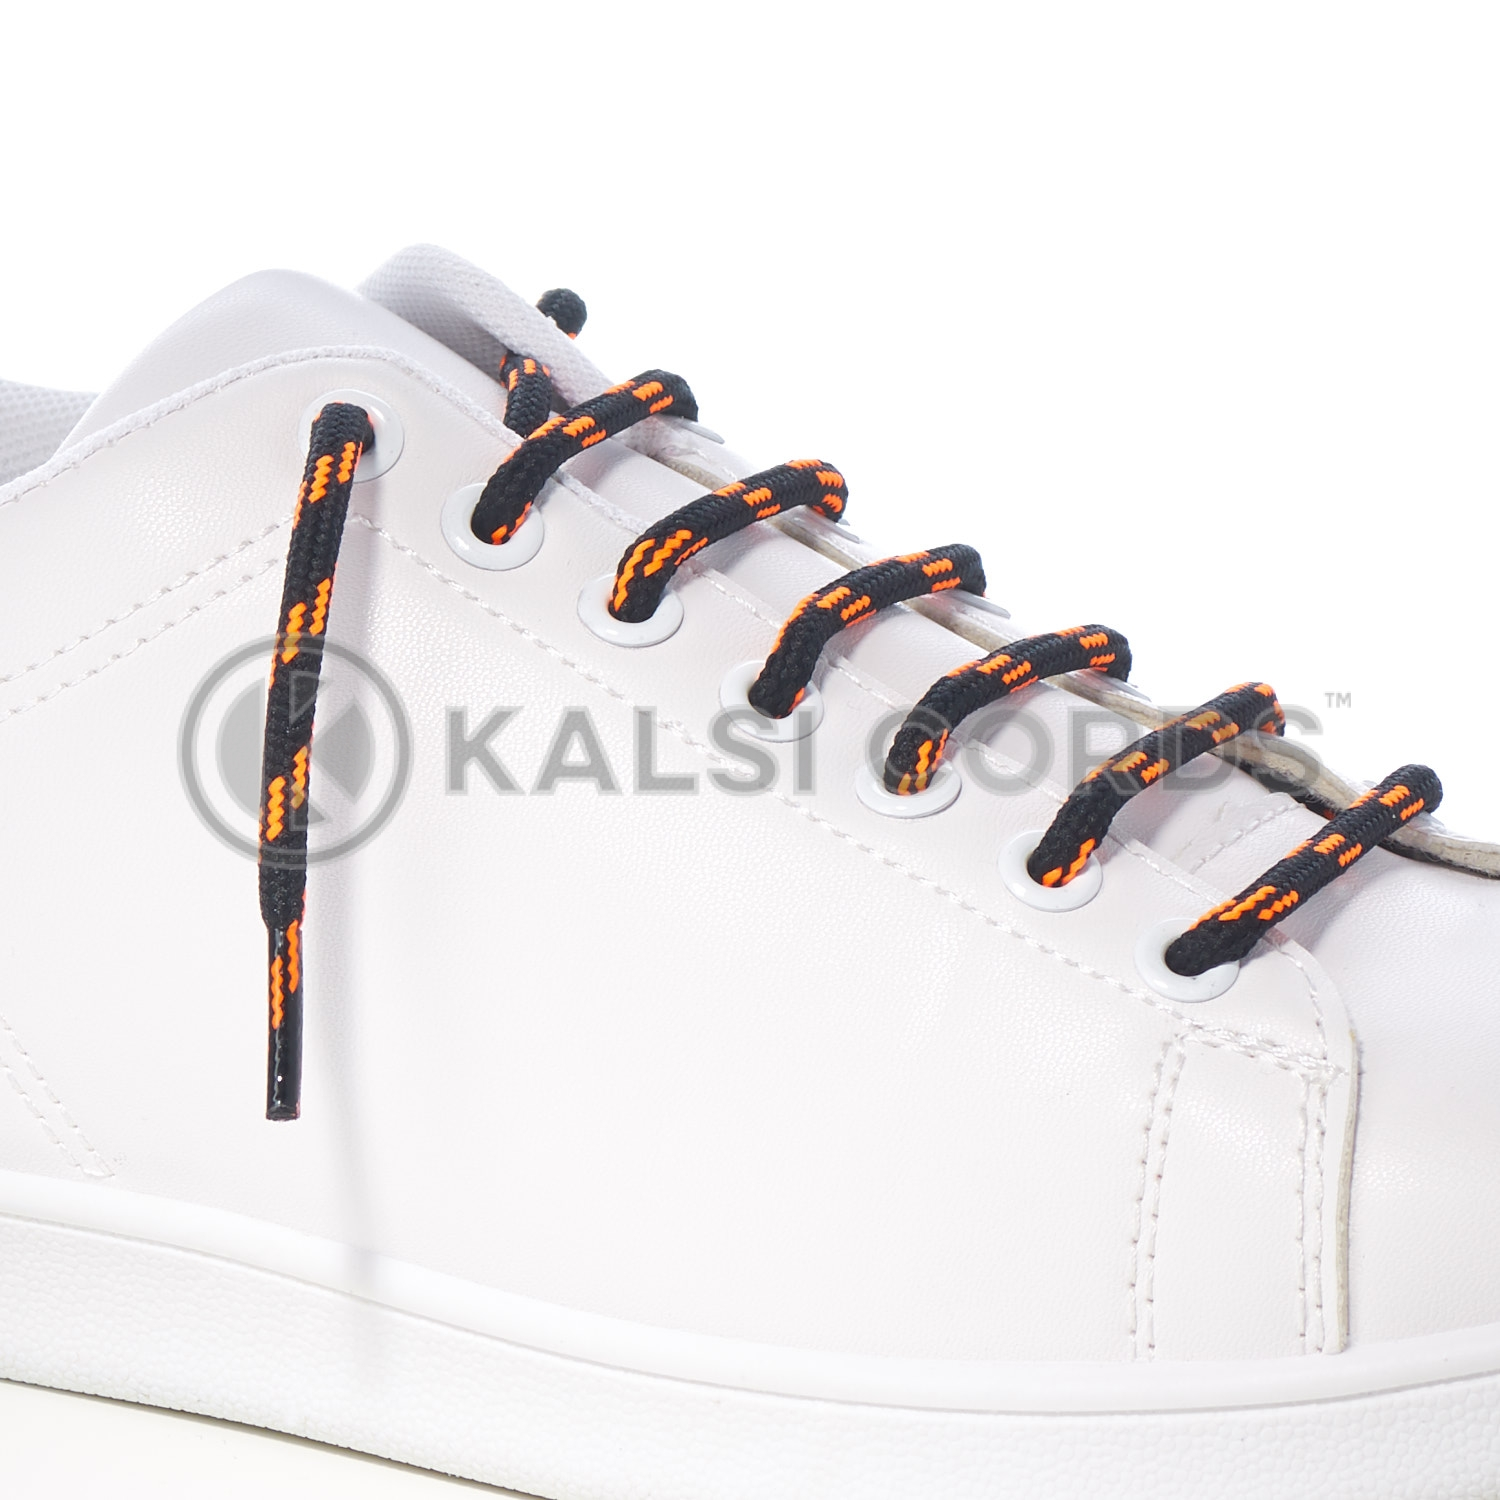 T621 5mm Round Cord Shoe Lace Black Fluorescent Orange 4 Fleck Kids Trainers Adults Hiking Walking Boots Kalsi Cords